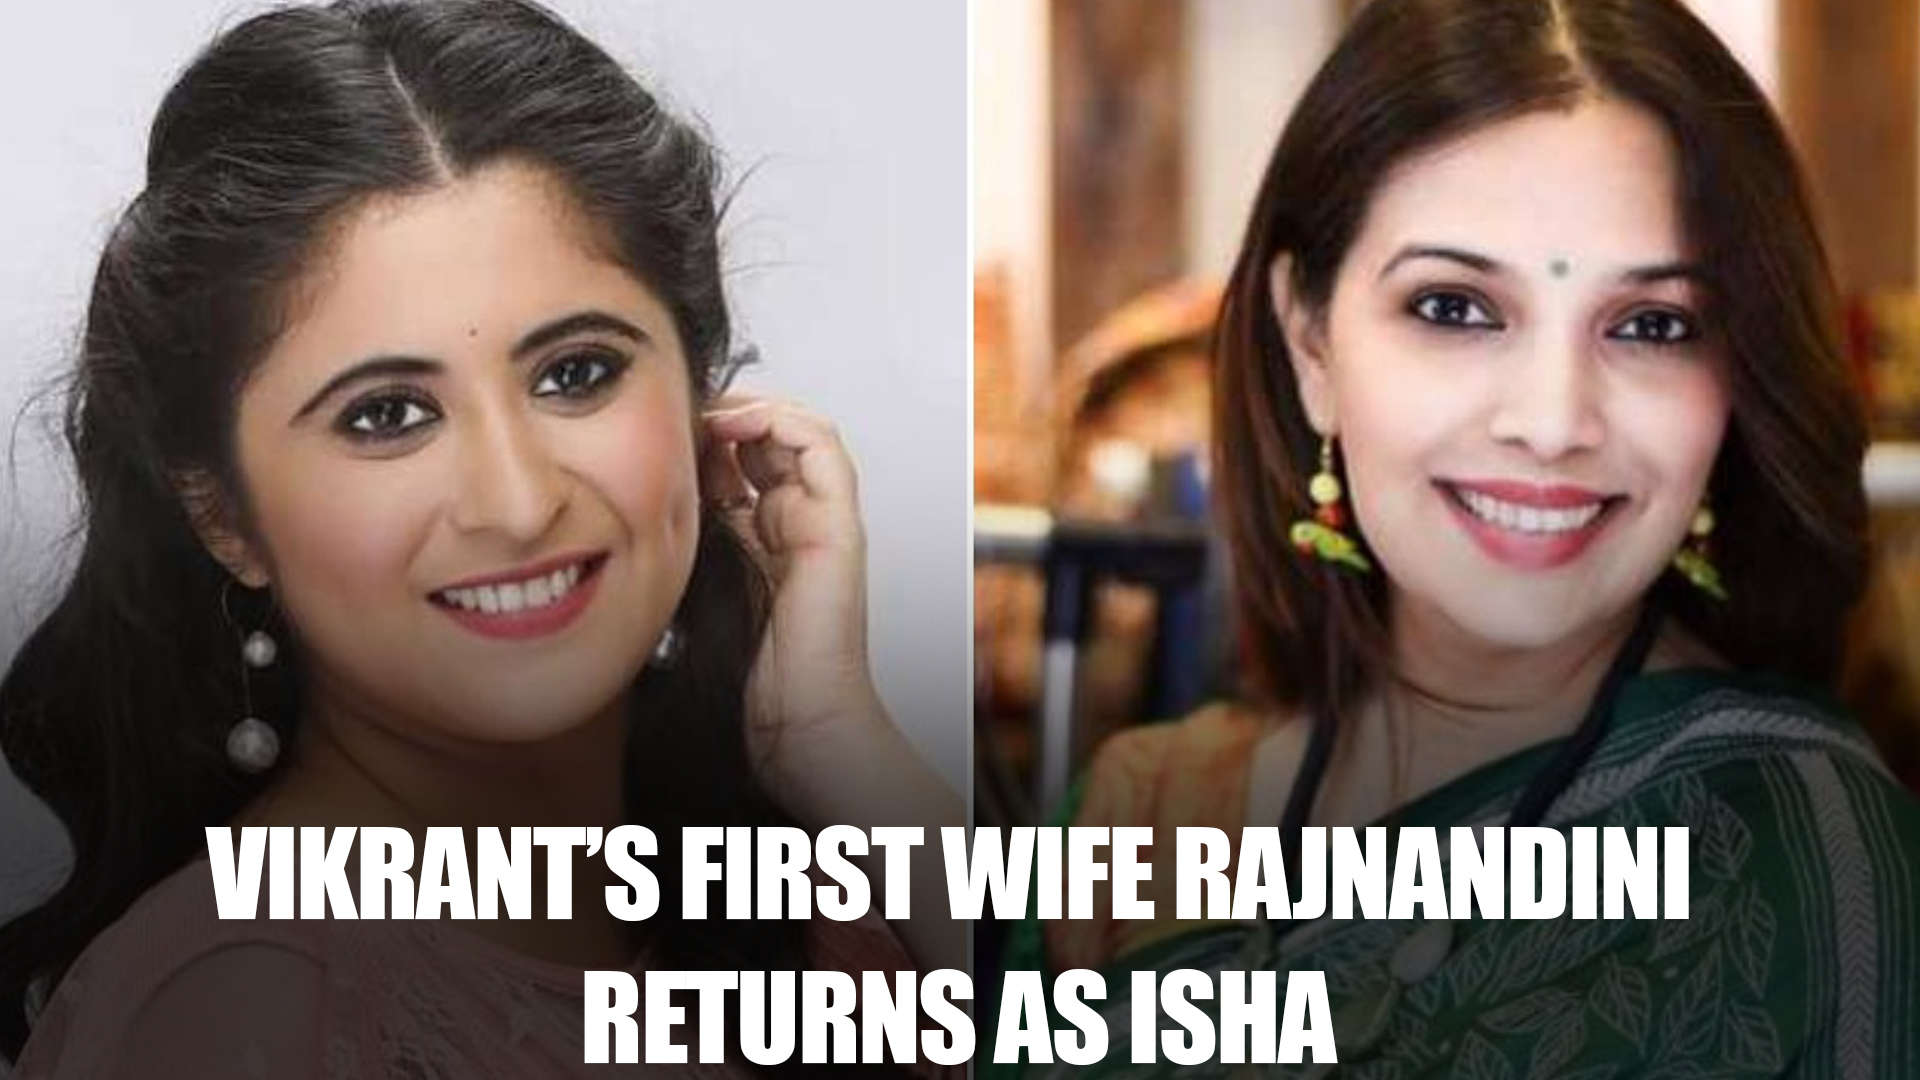 Tula Pahate Re: Vikrant's first wife Rajnandini returns as Isha